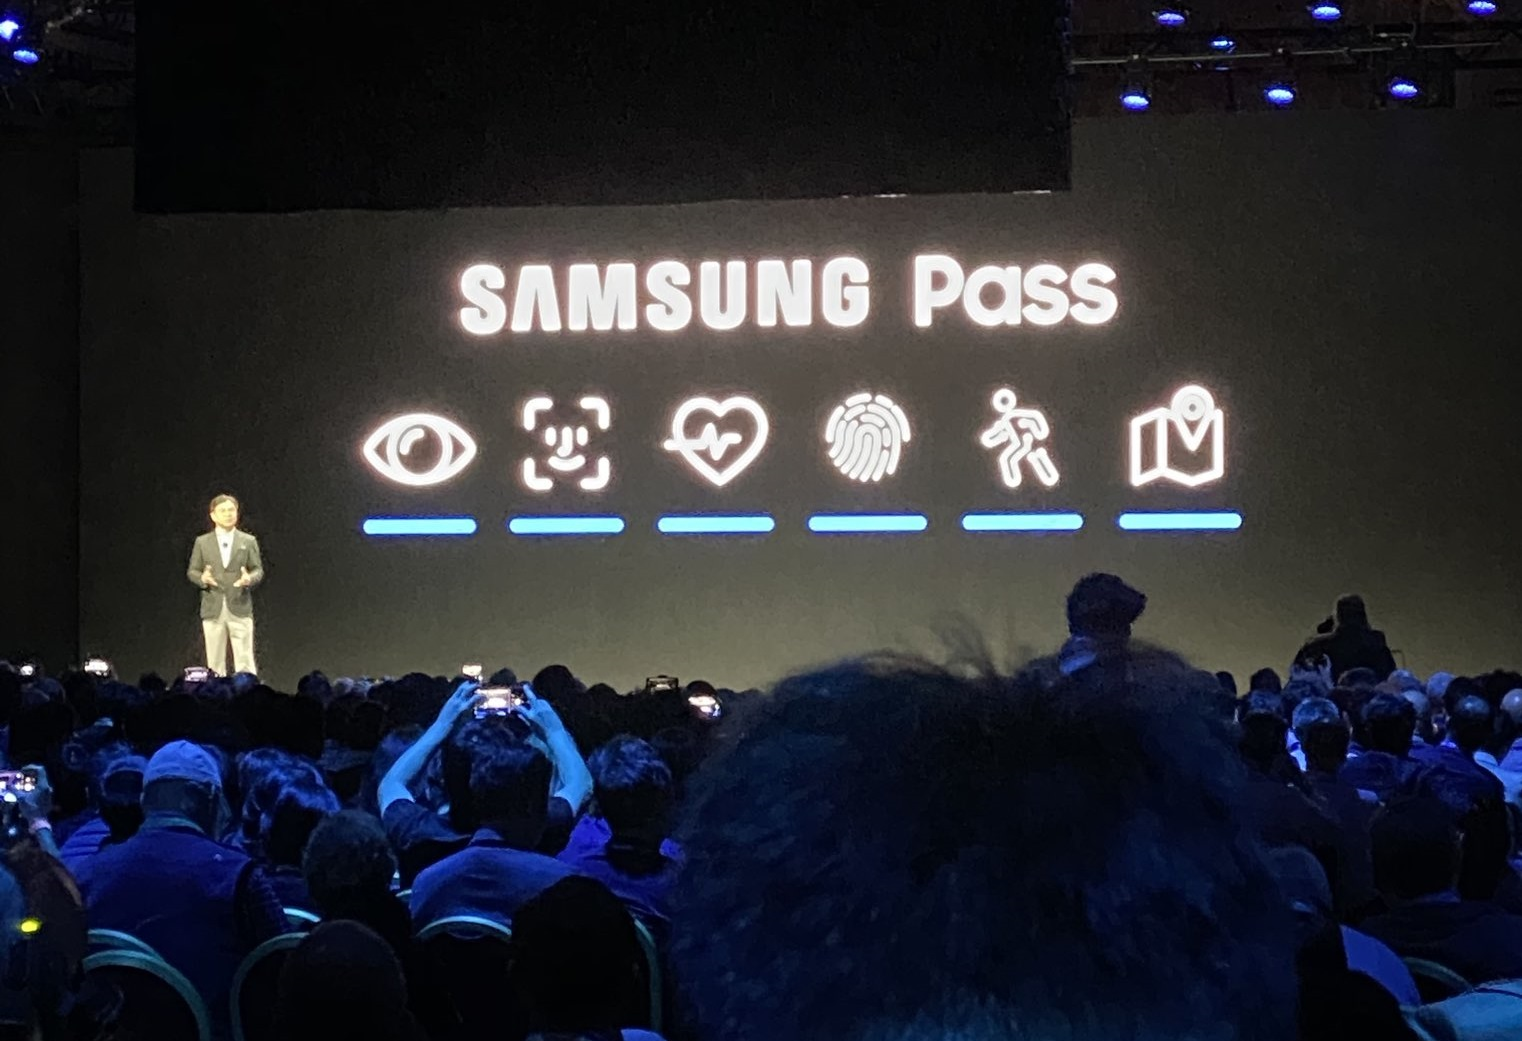 Samsung Once Again Blatantly Copied Apple - Difficult To Differentiate Between Icons - Digital Information World